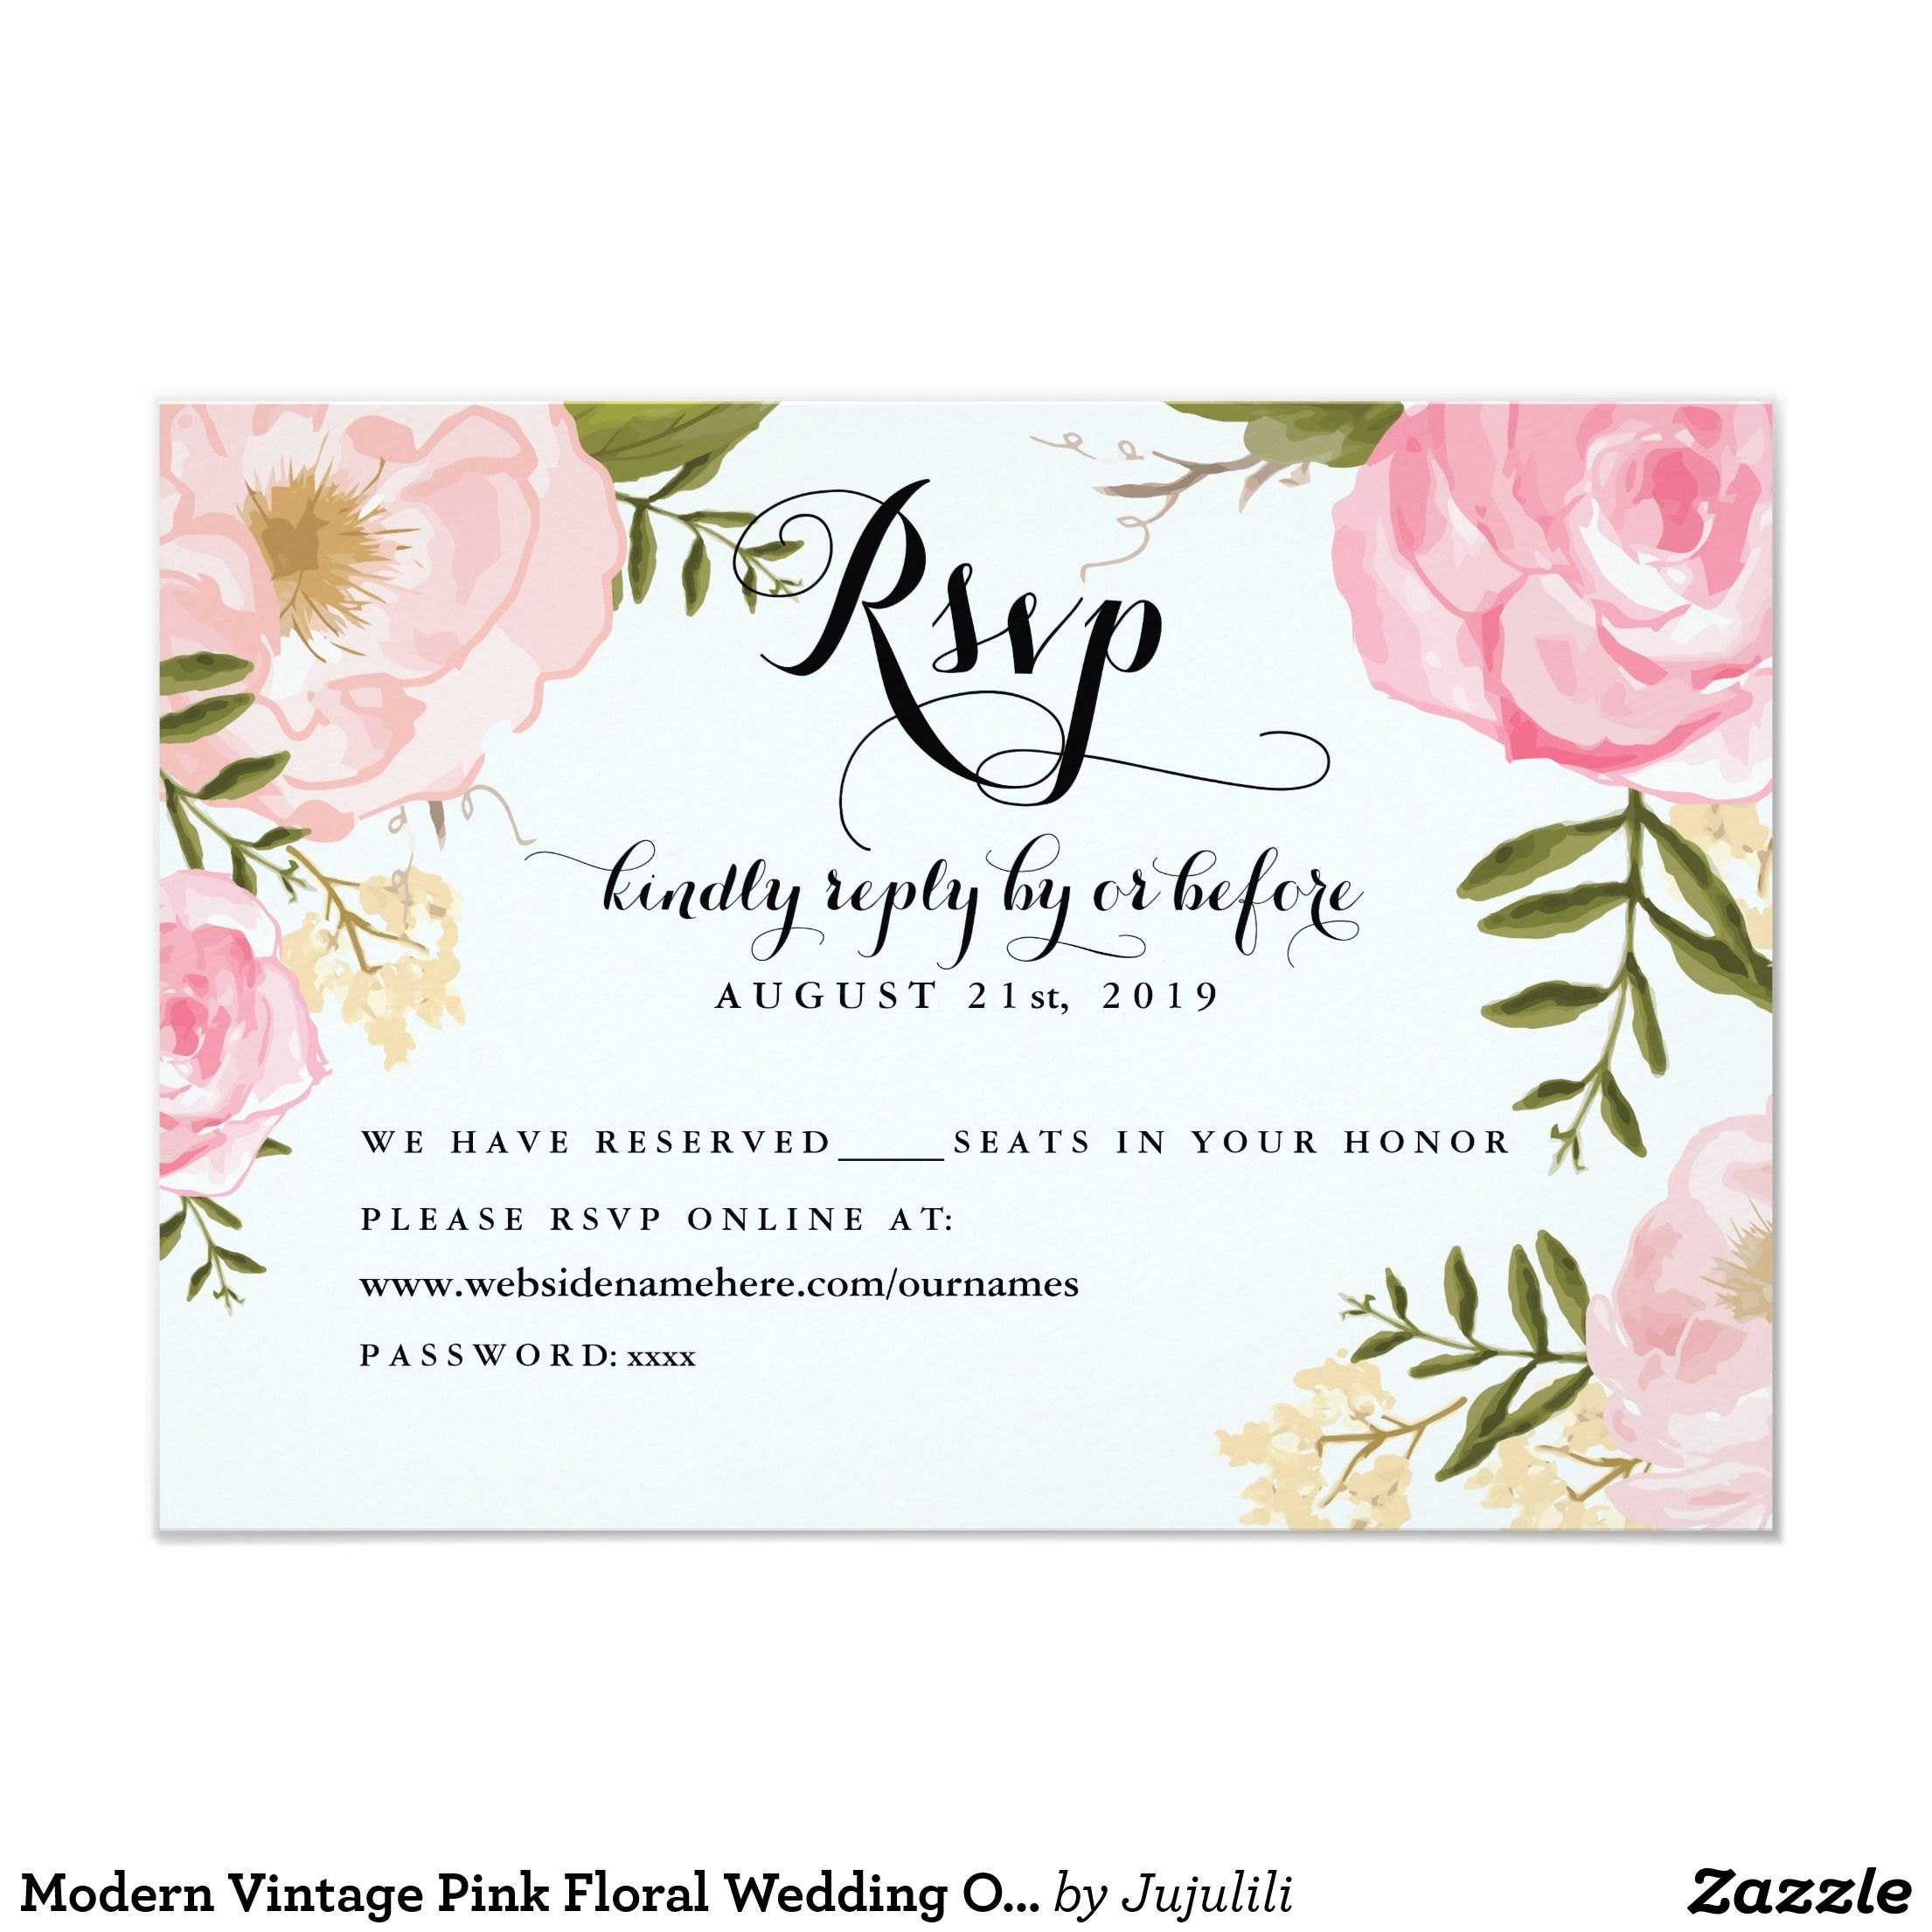 Modern Vintage Pink Floral Wedding Online RSVP Zazzle